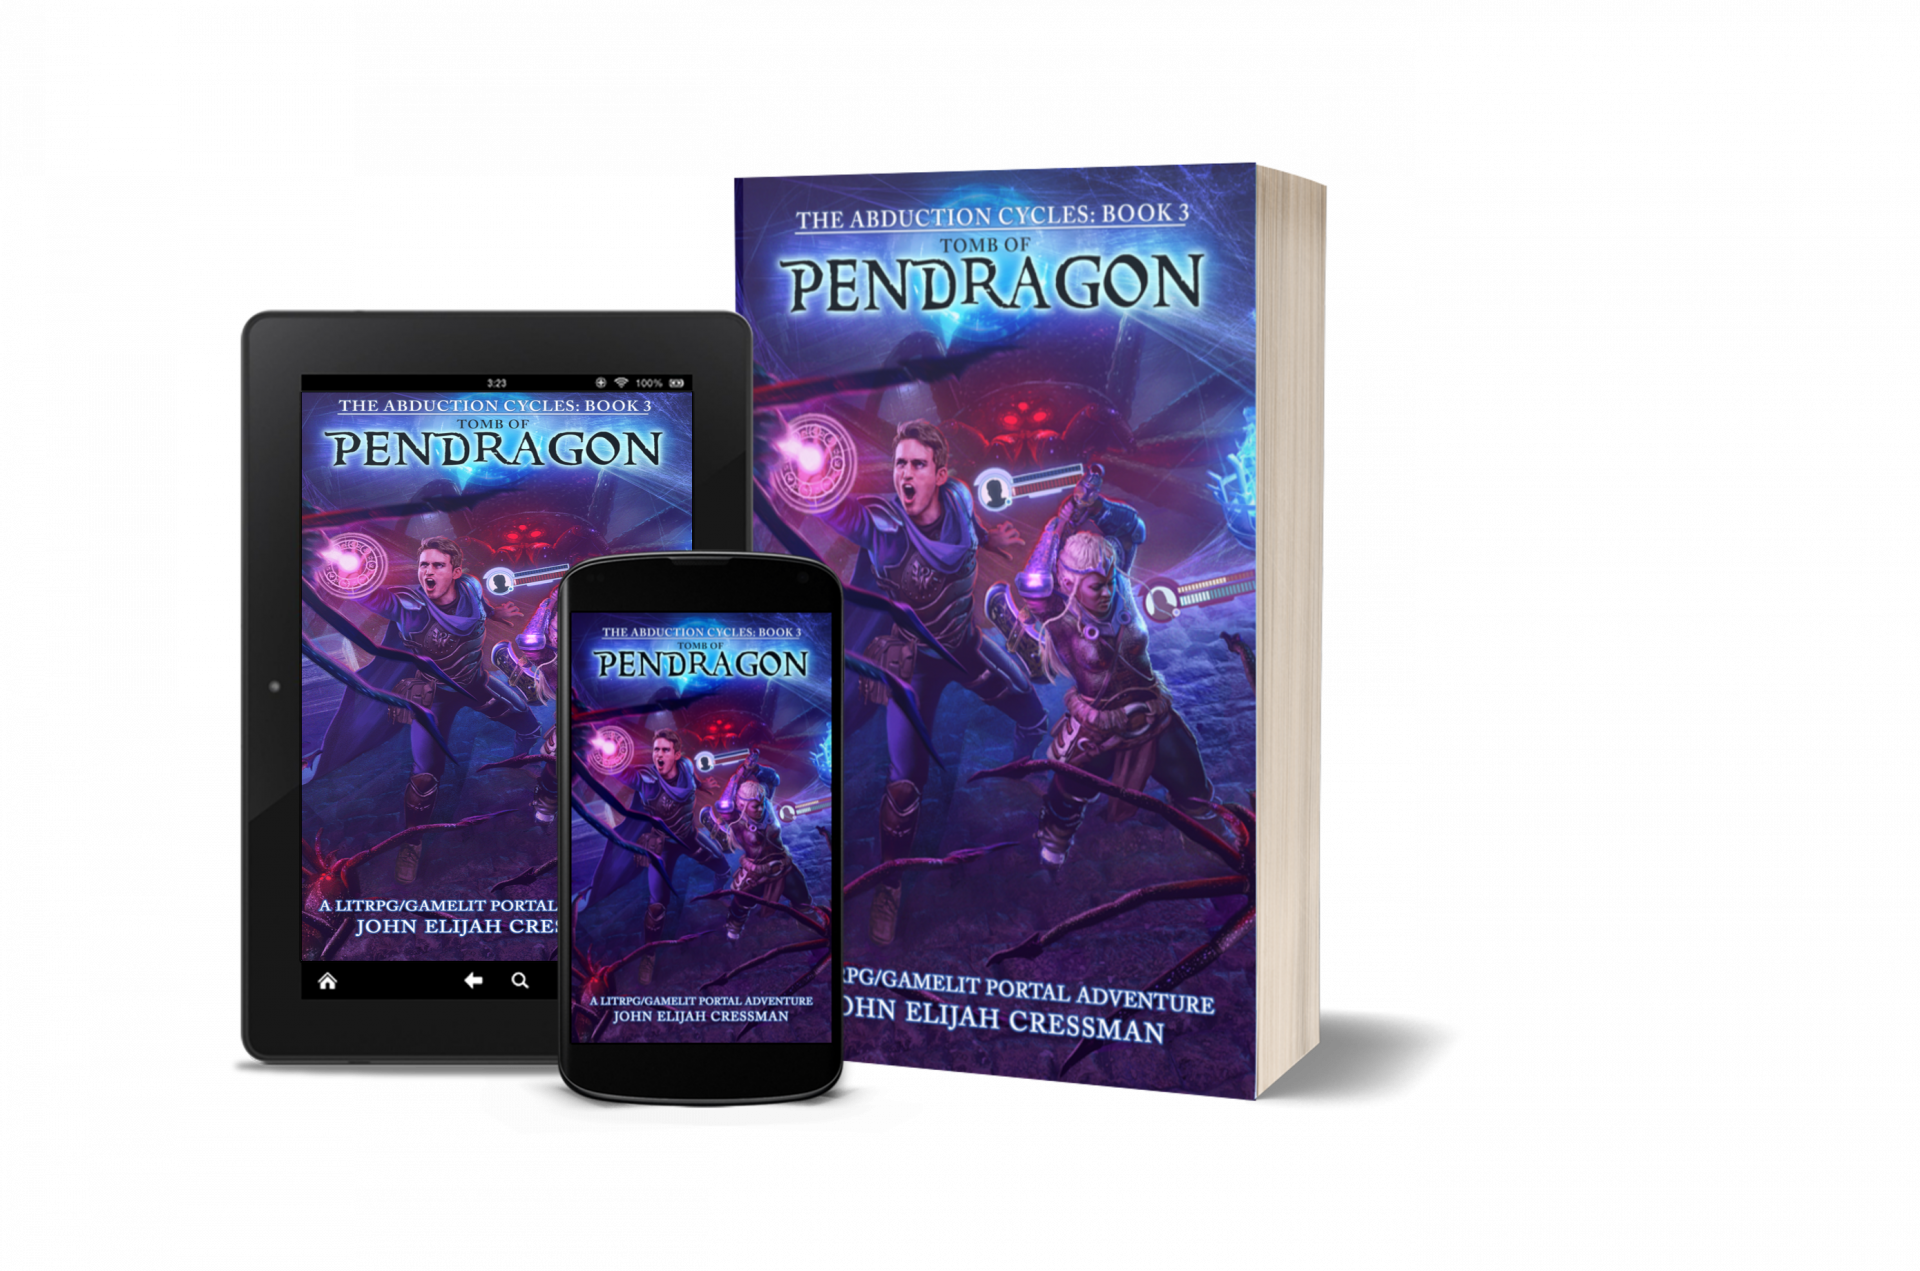 Abduction Cycles: Tomb of Pendragon Summary